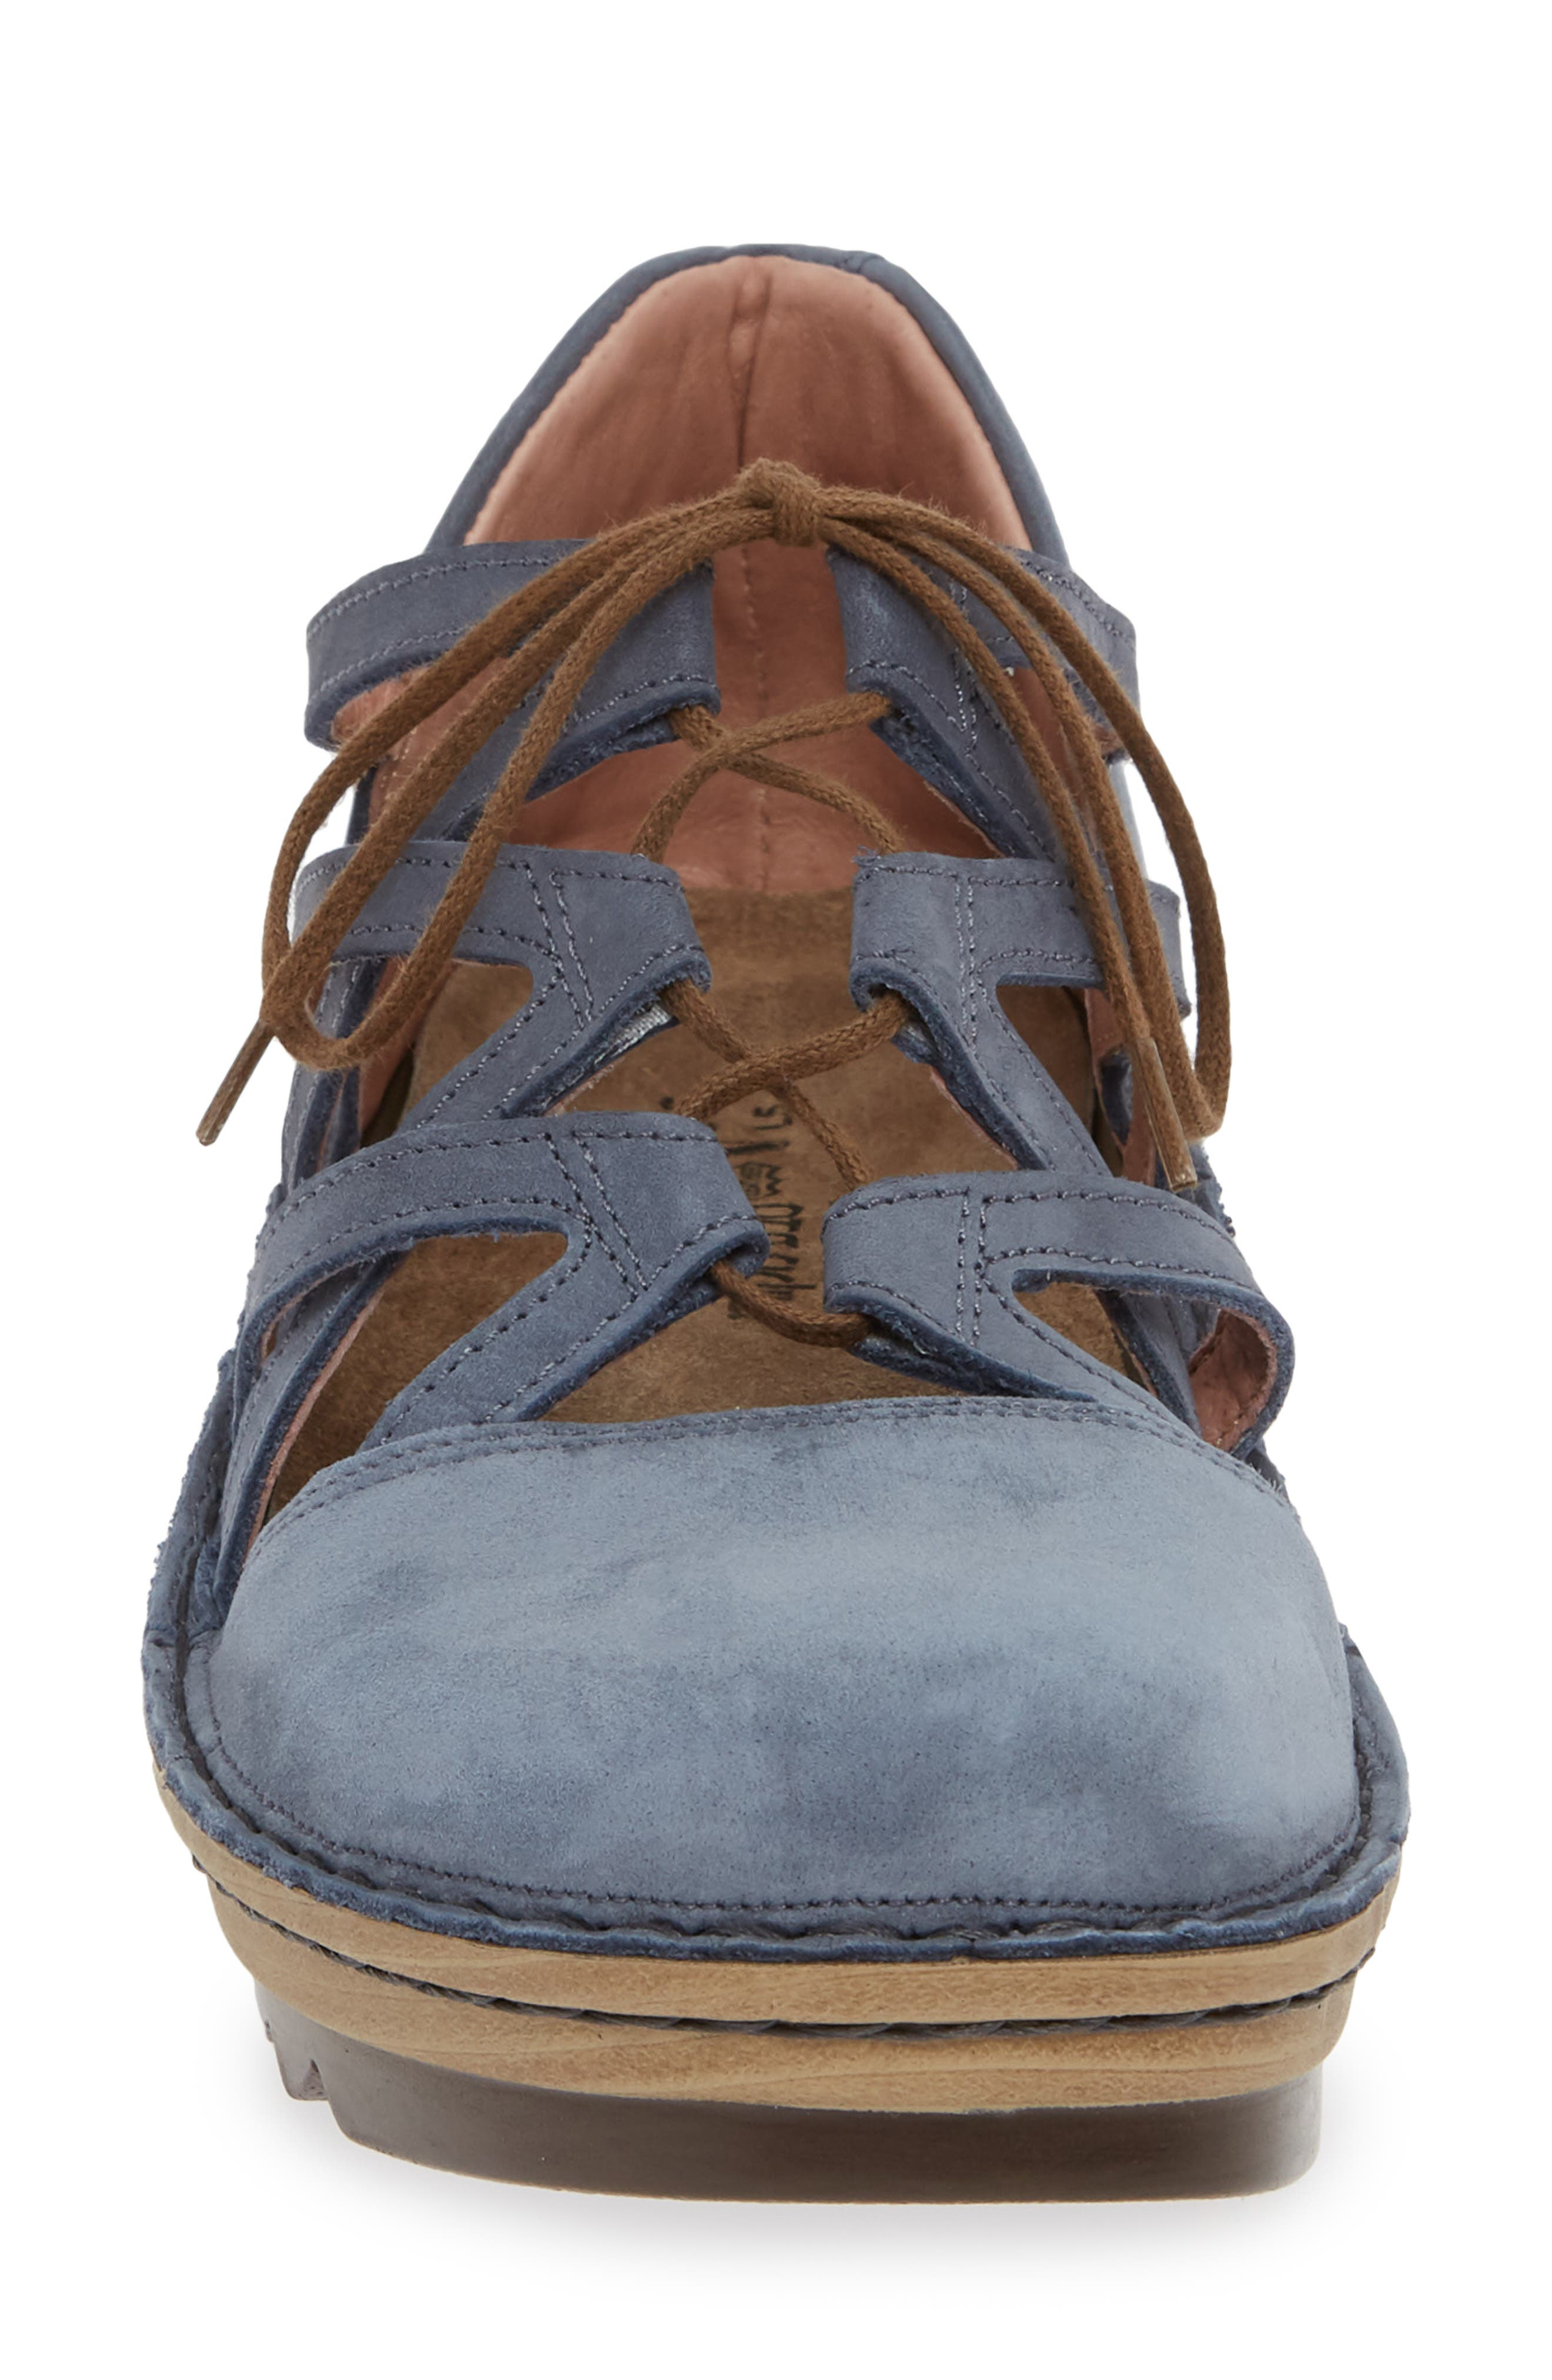 NAOT, Calathea Ghillie Laced Wedge, Alternate thumbnail 4, color, FEATHERY BLUE NUBUCK